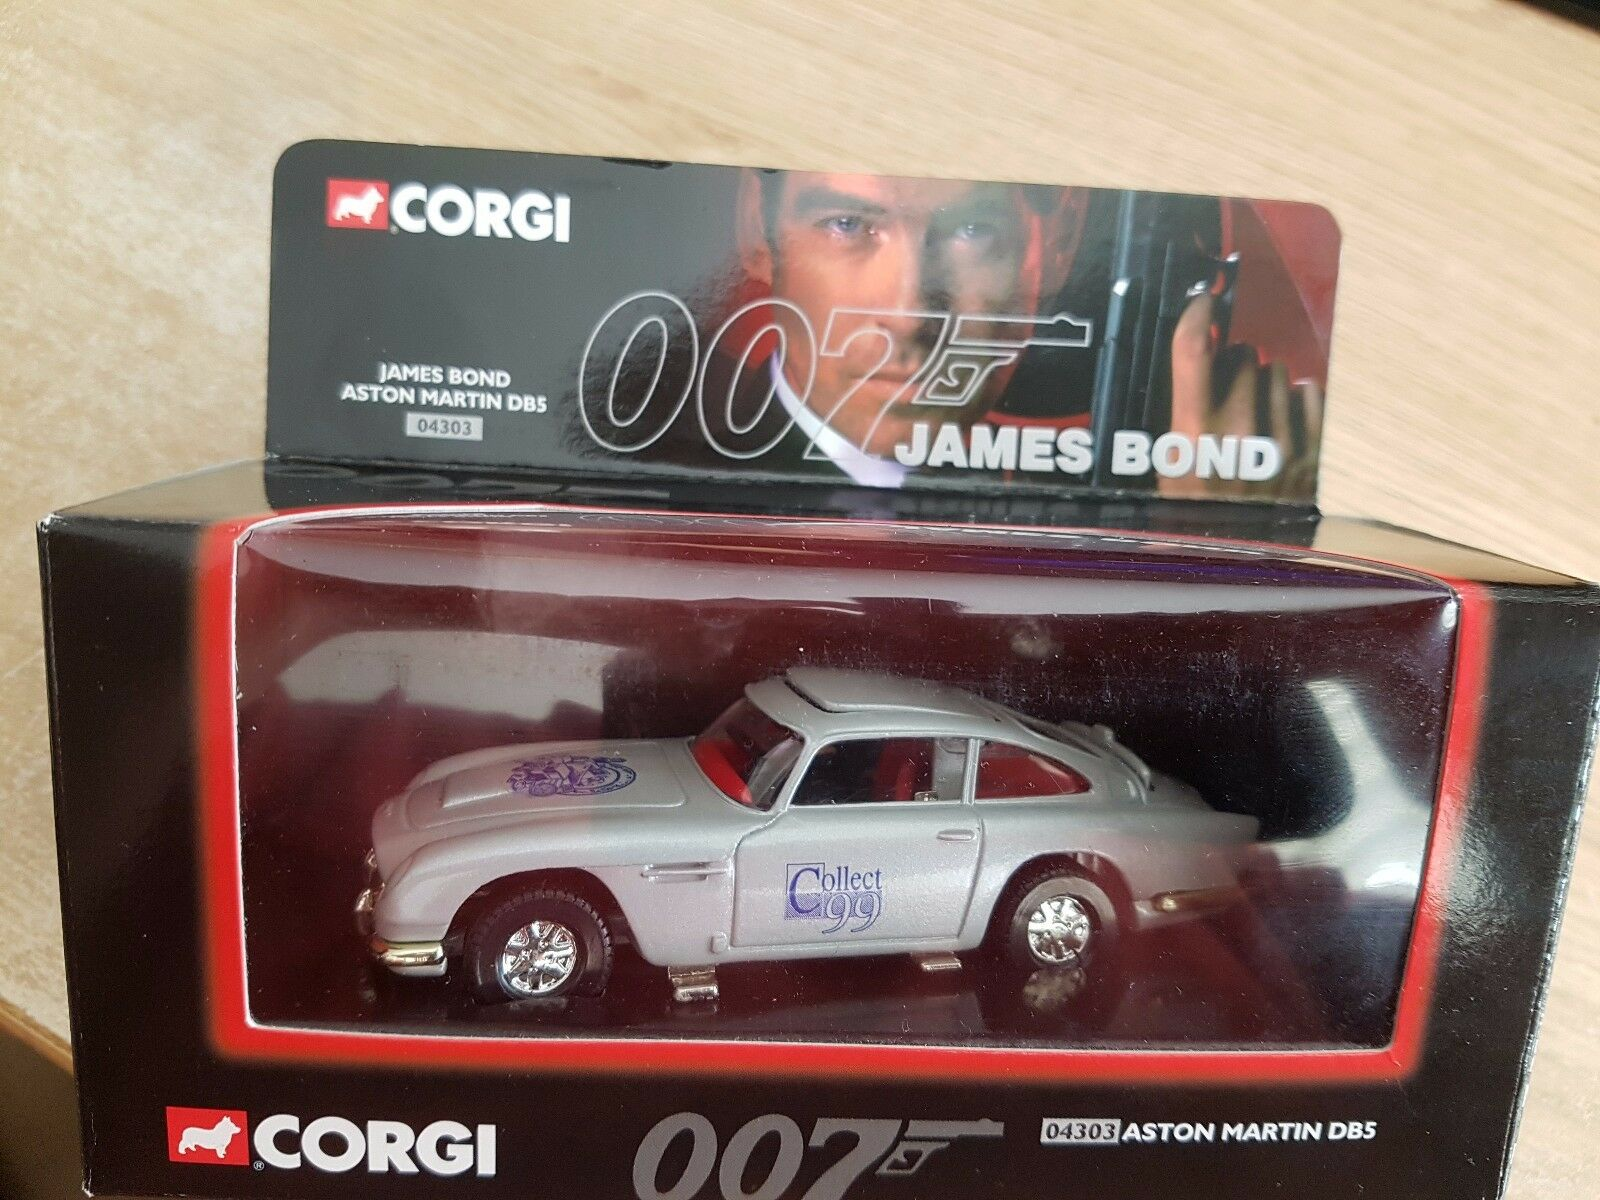 Corgi 04303 James Bond Aston Martin DB5 Collect 99 édition limitée